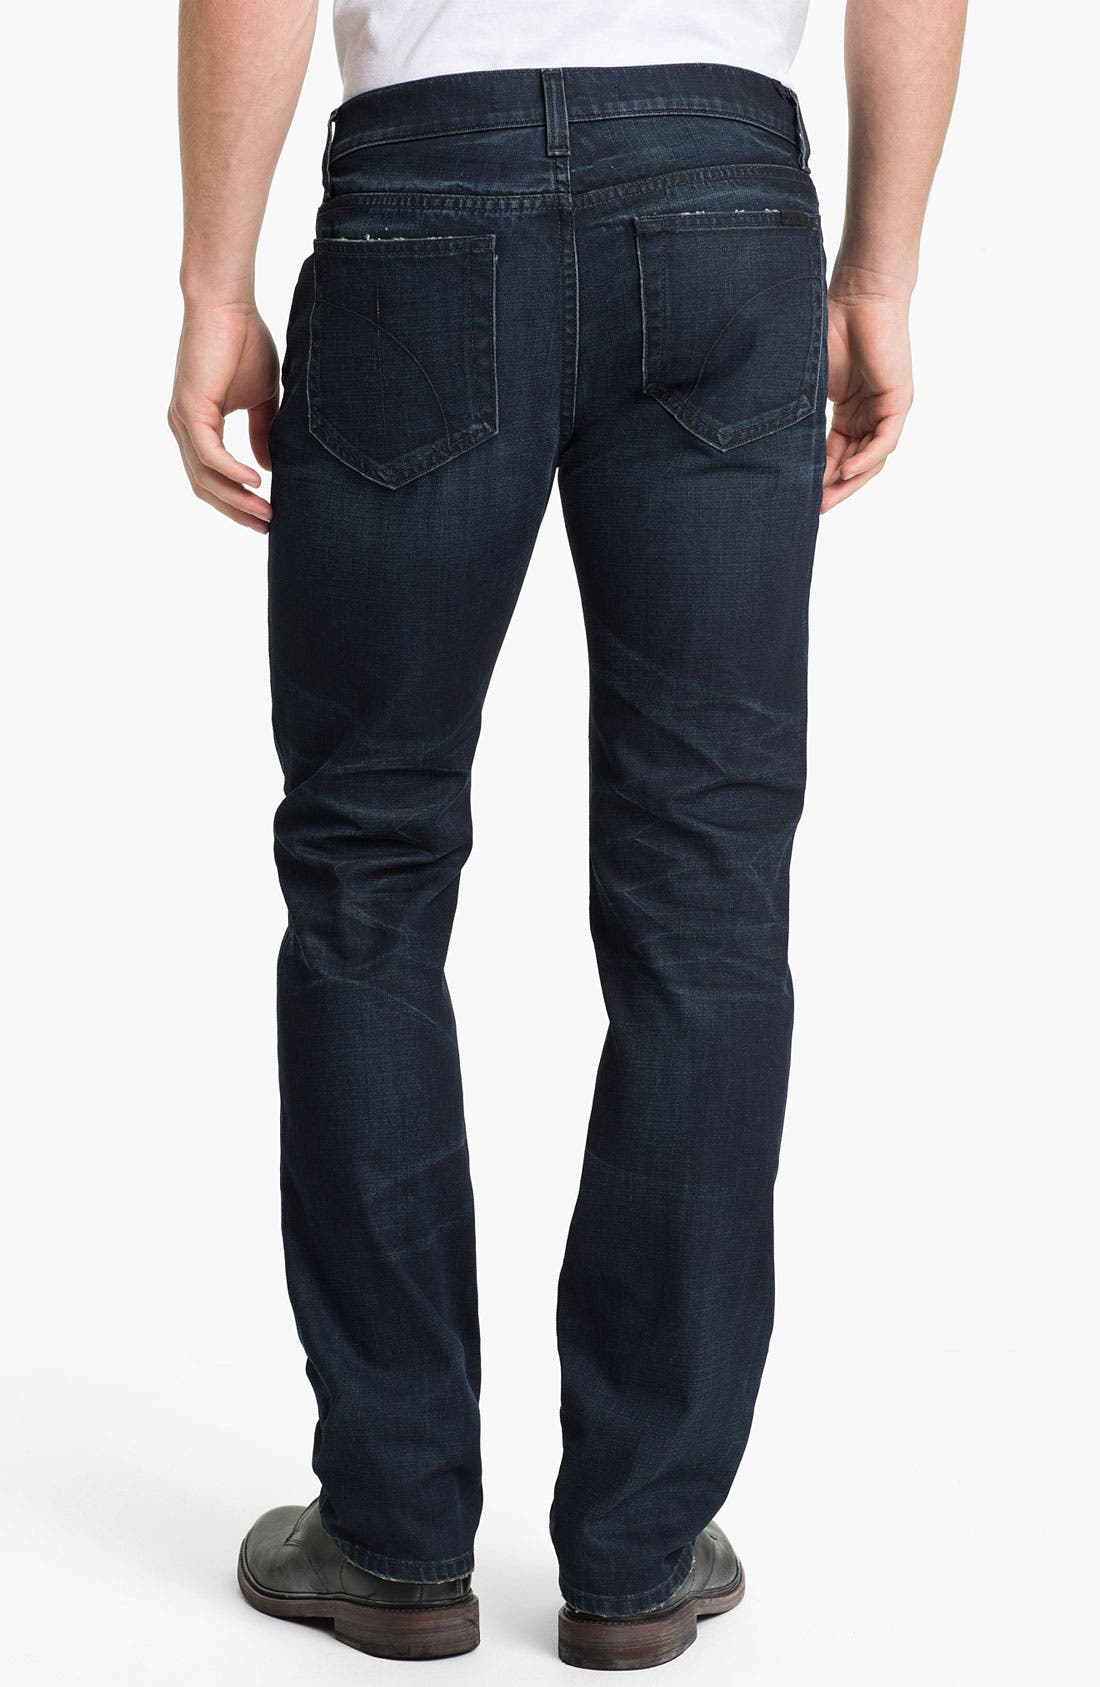 Alternate Image 1 Selected - Joe's 'Brixton' Slim Straight Leg Jeans (Kensington)